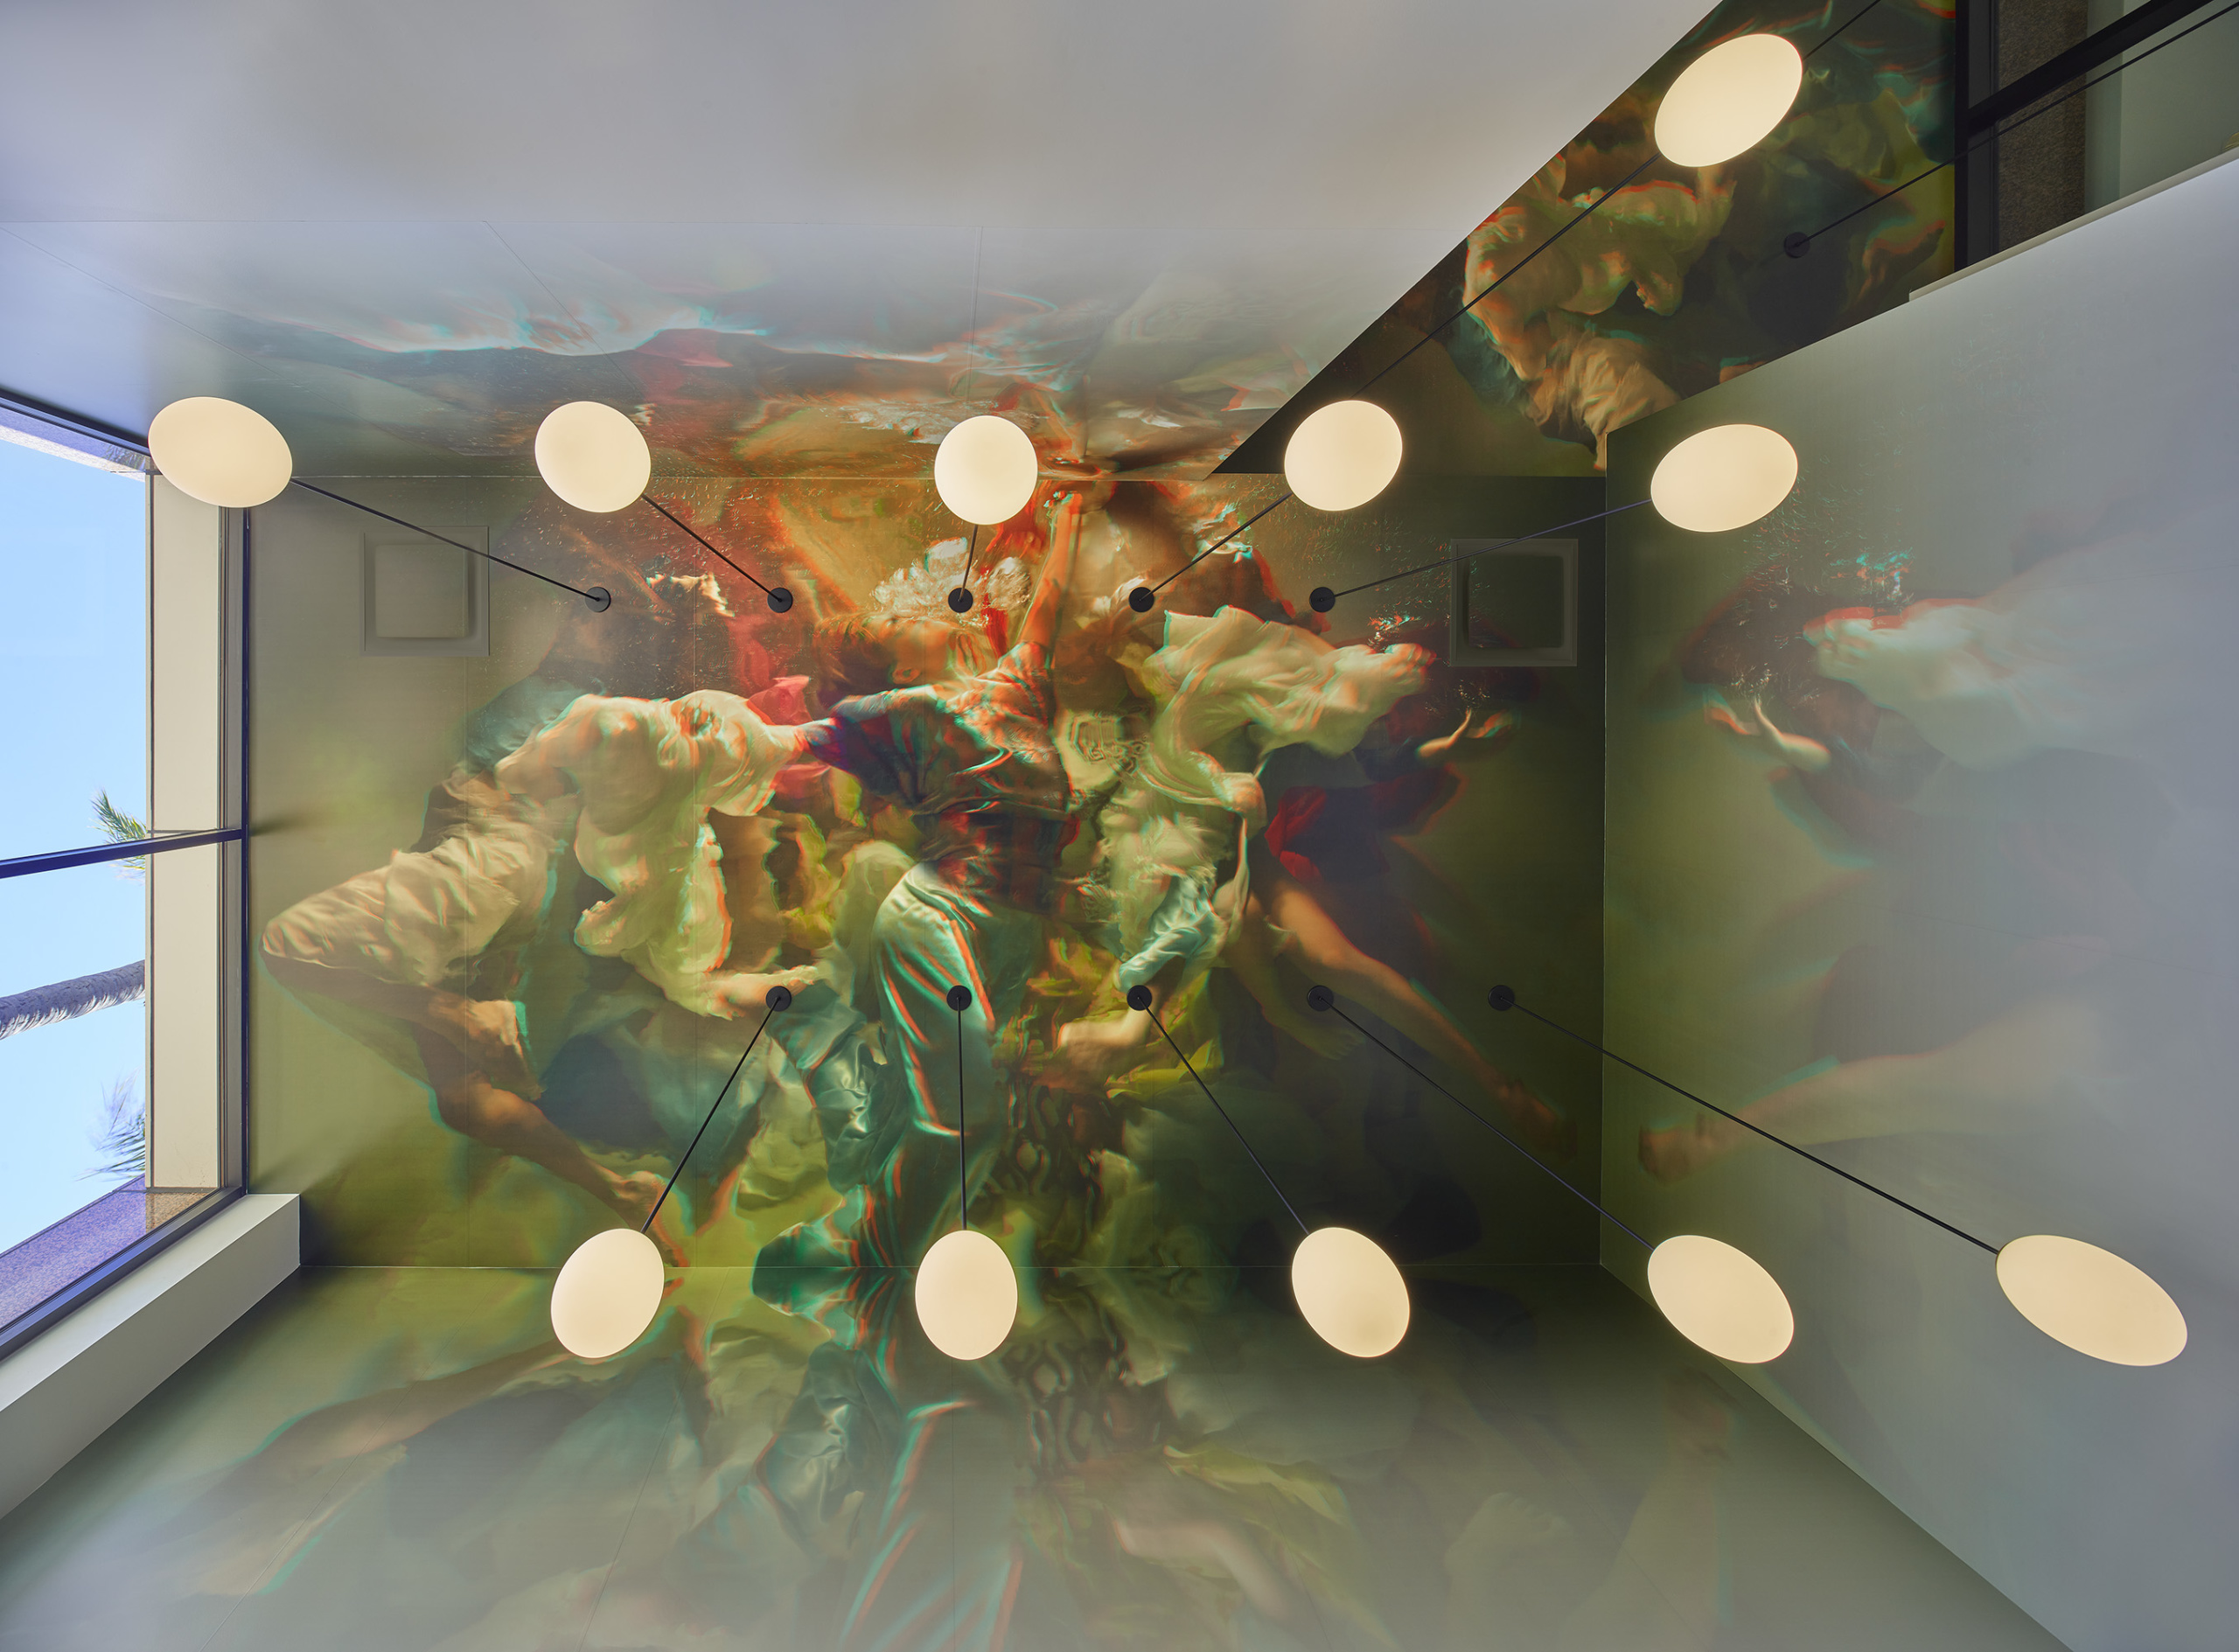 A large stereoscopic mural hung from the ceiling of a Newport Beach restaurant